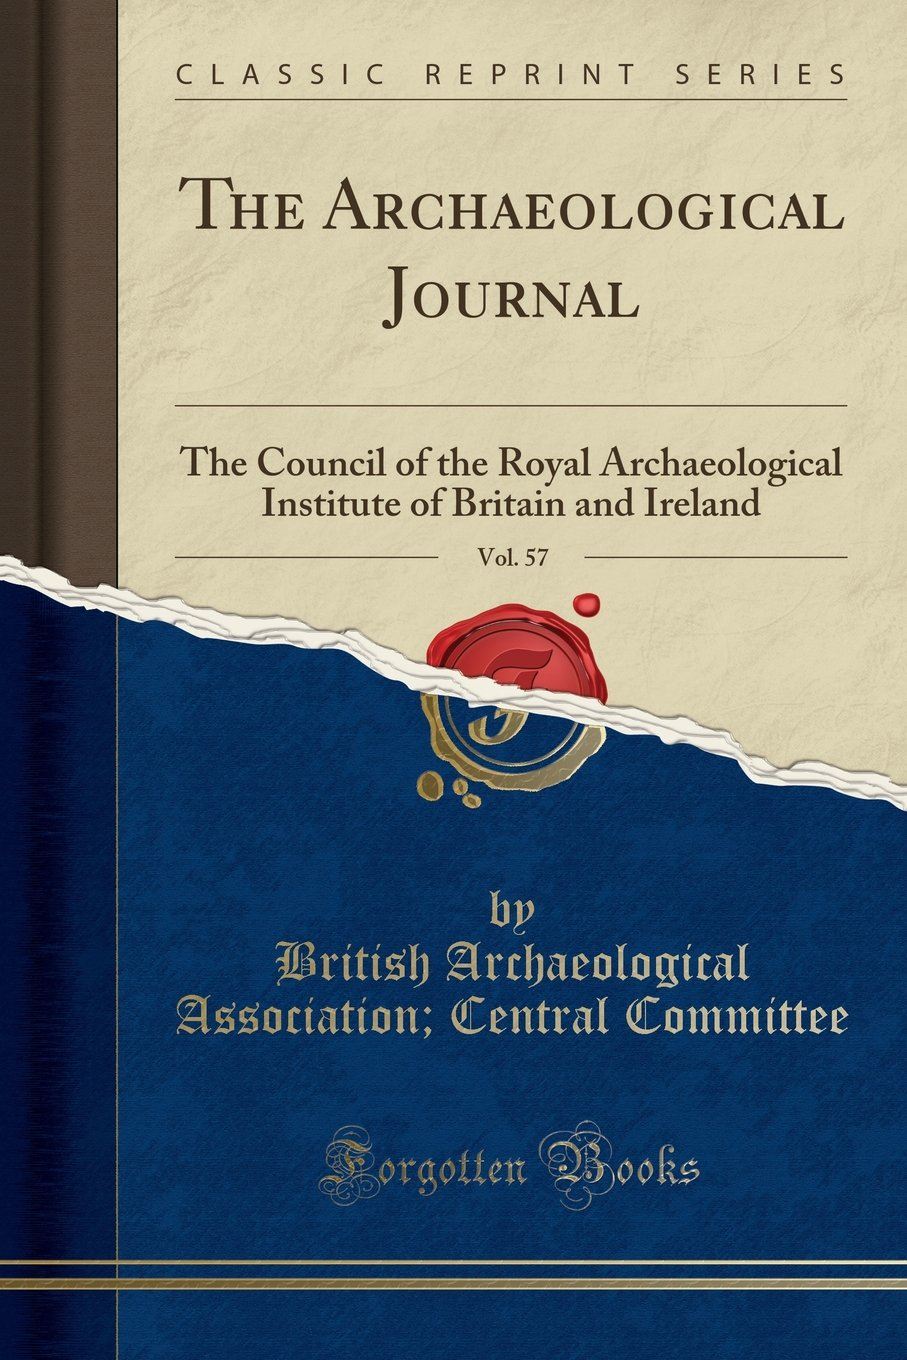 Download The Archaeological Journal, Vol. 57: The Council of the Royal Archaeological Institute of Britain and Ireland (Classic Reprint) ebook